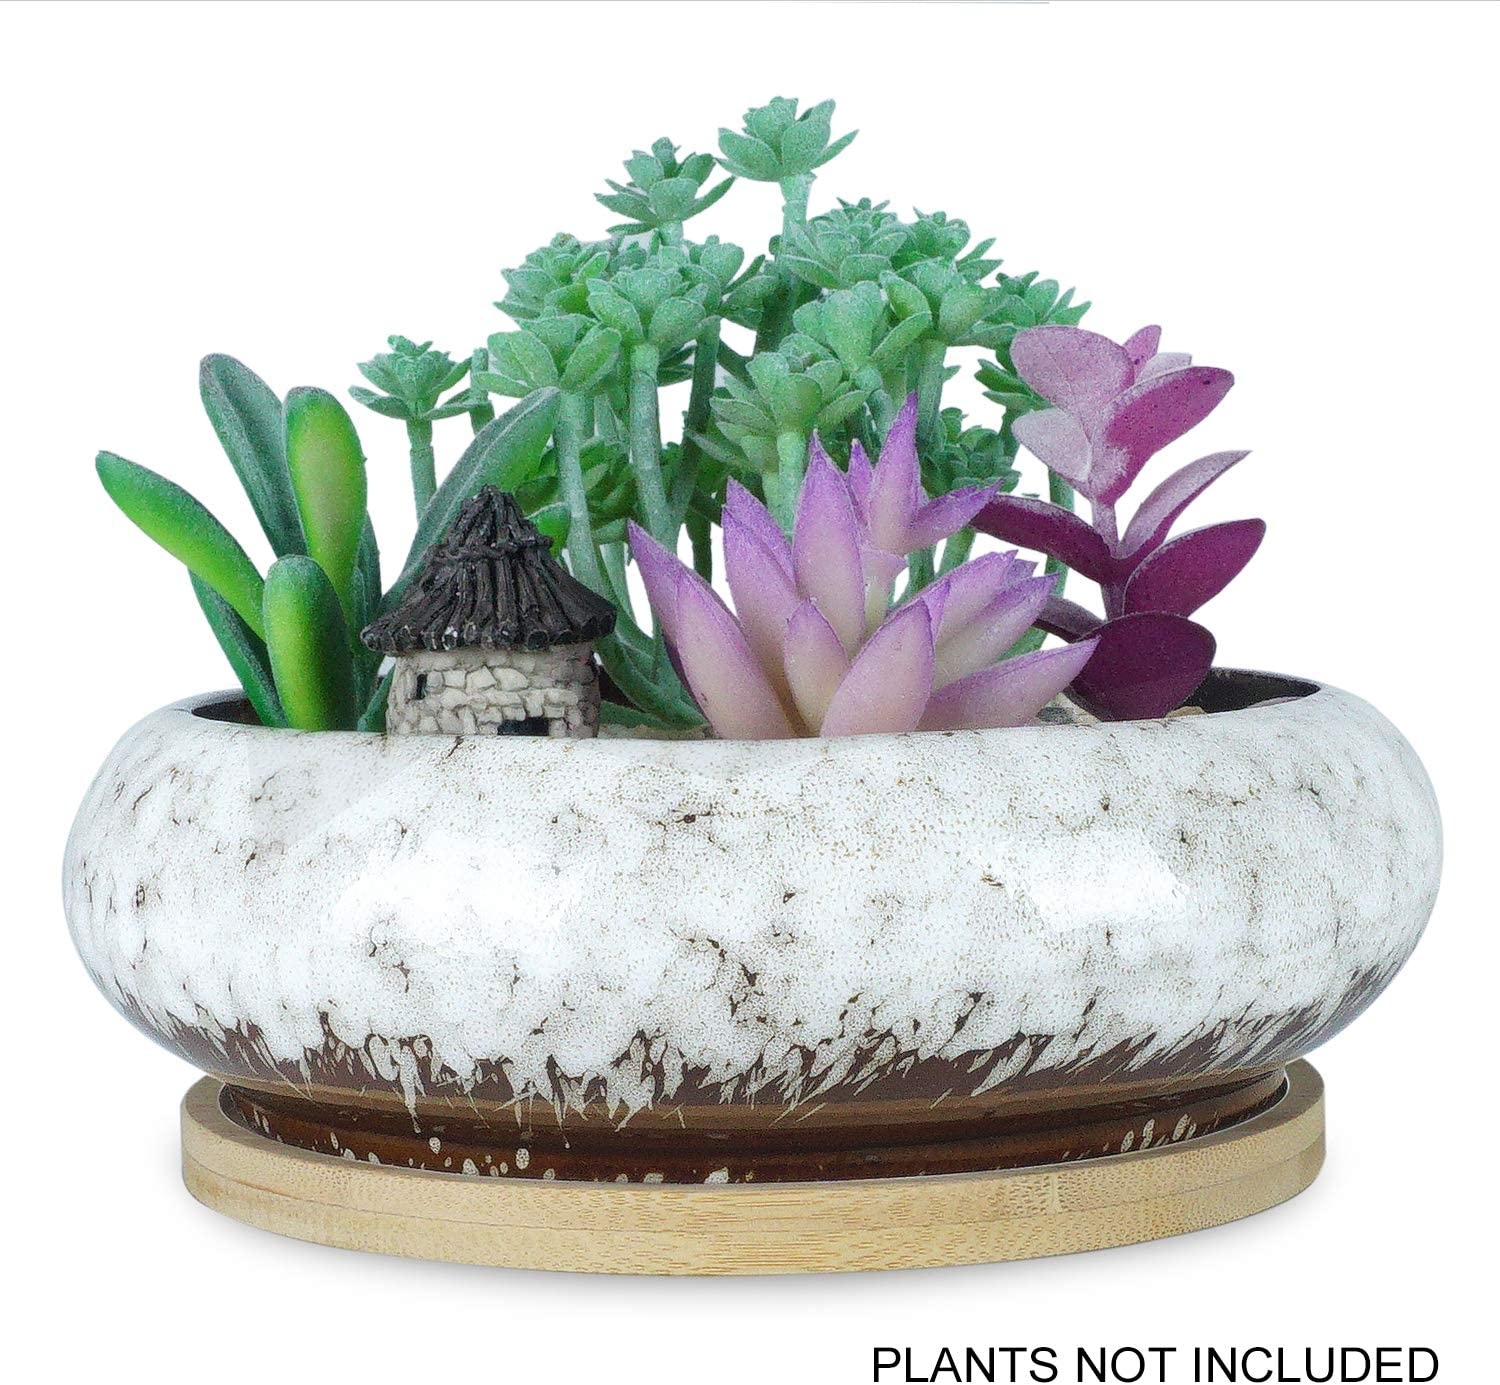 7.3 inch Round Succulent Planter Pots with Drainage Hole Bonsai Pots Garden Decorative Cactus Stand Ceramic Glazed Flower Container with Bamboo Tray, White